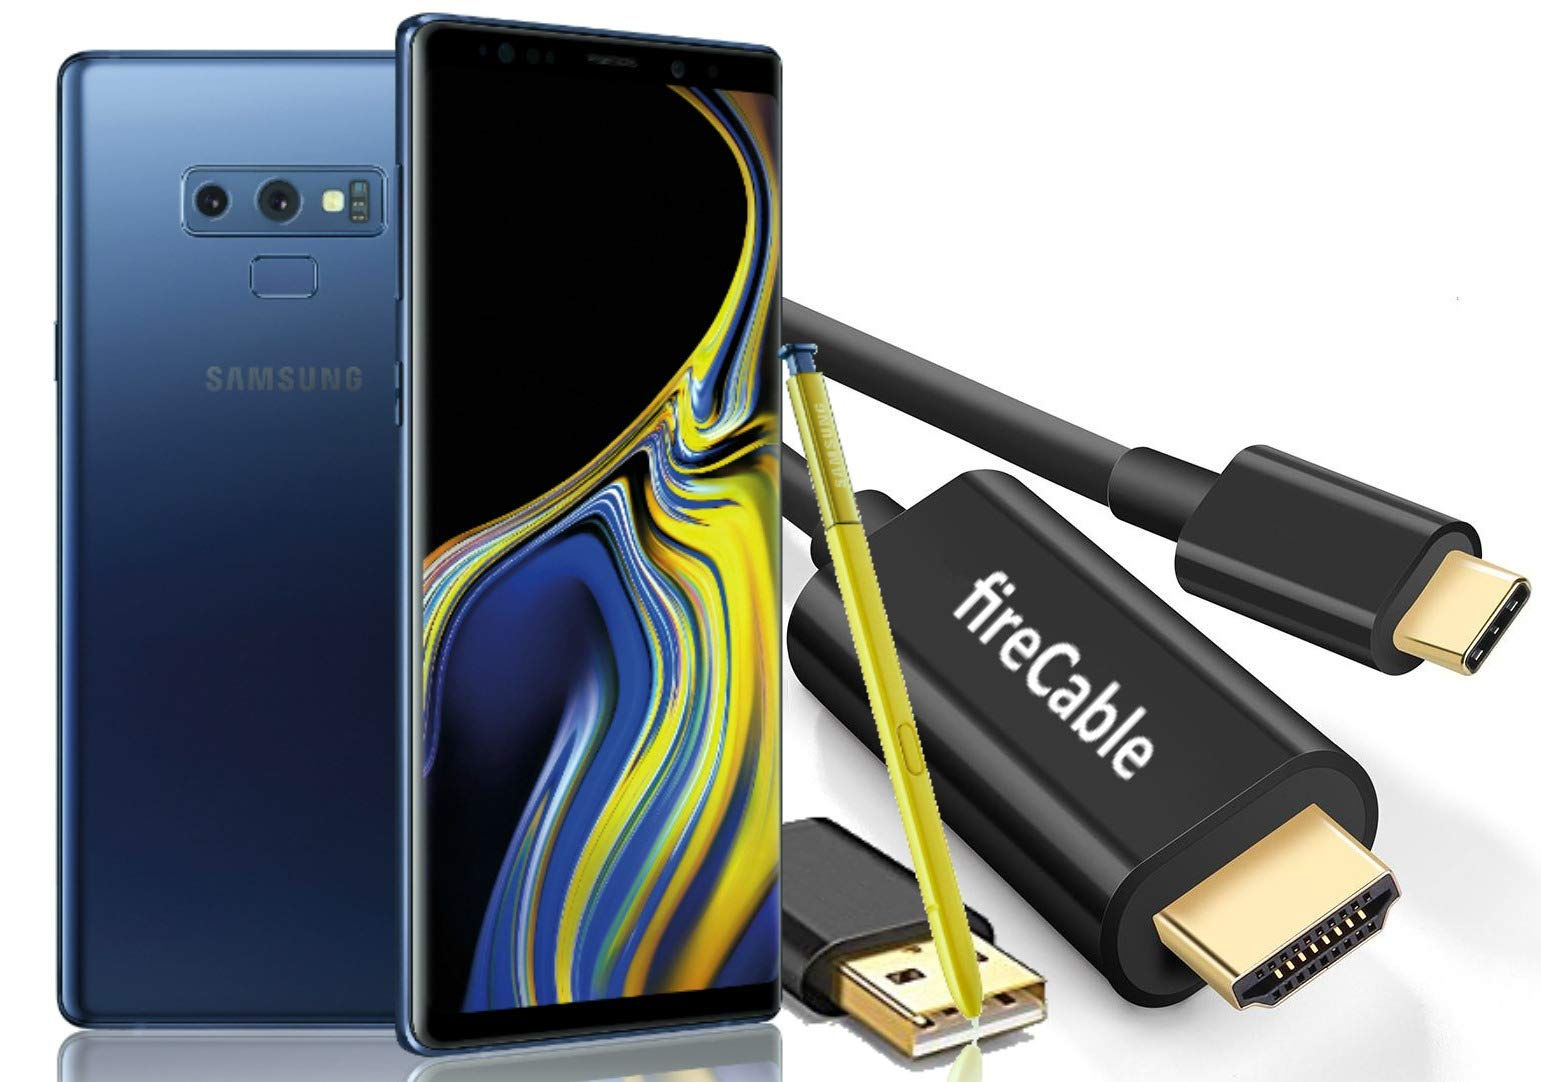 fireCable Galaxy Note 9 | Duo - USB C to HDMI Male Cable w/Charge Cord (Connects Your Note9 to Monitor/TV - Activates Full DeX Mode Desktop Experience)